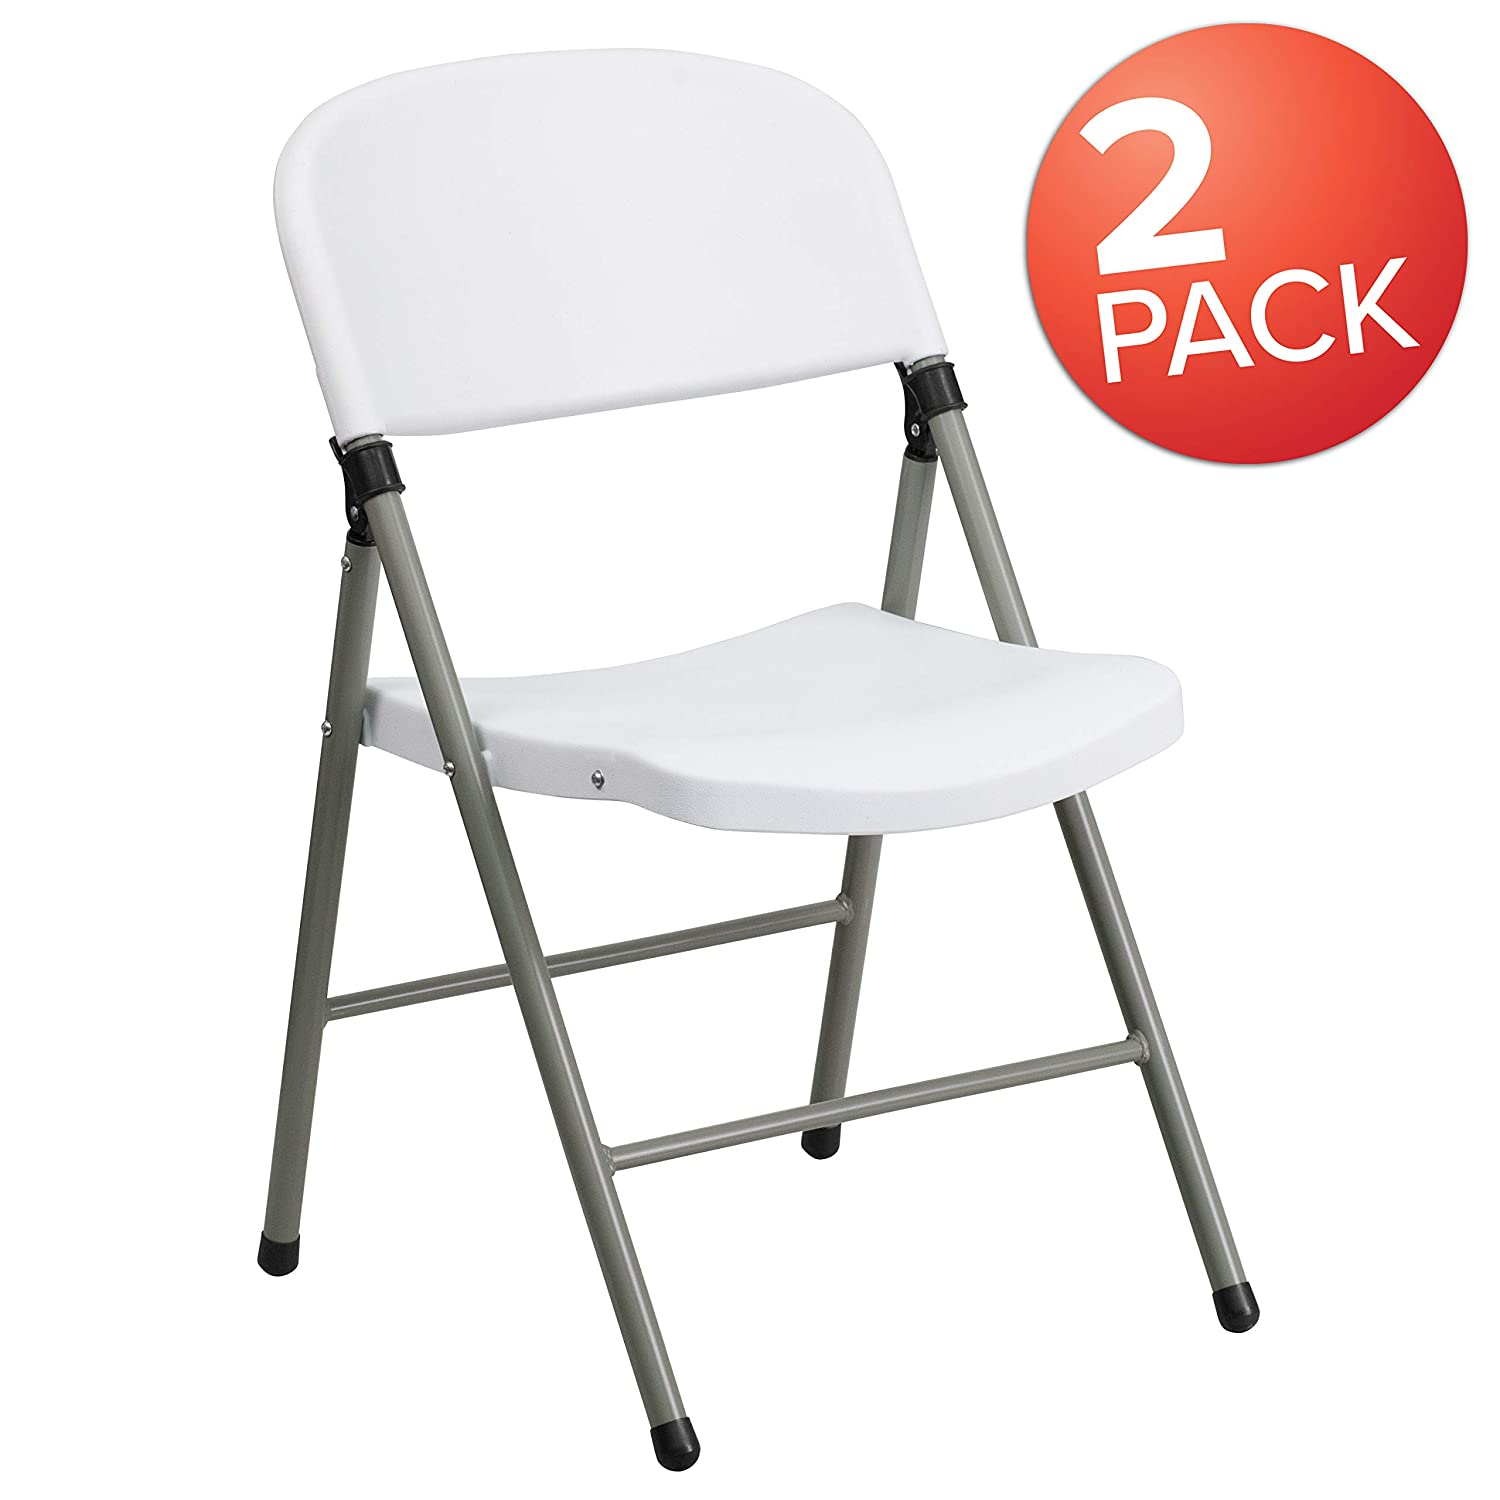 Flash Furniture HERCULES Series White Plastic Folding Chairs | Set of 2 Lightweight Folding Chairs with Gray Frame